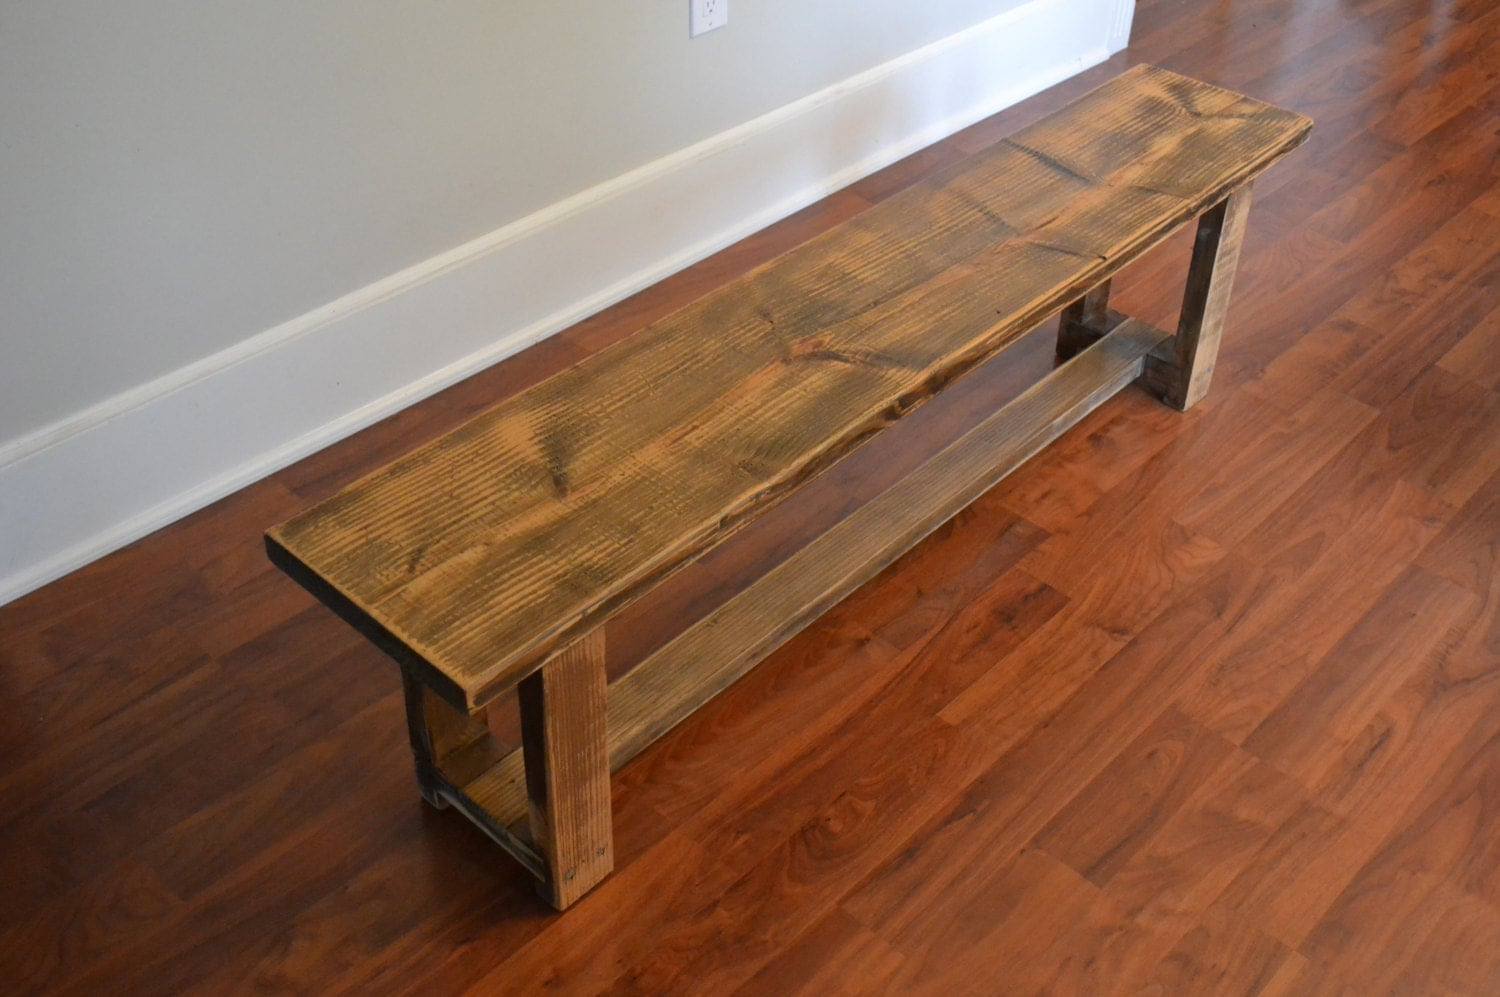 Bench Douglas Fir Bench Reclaimed Wood Bench Barn Wood